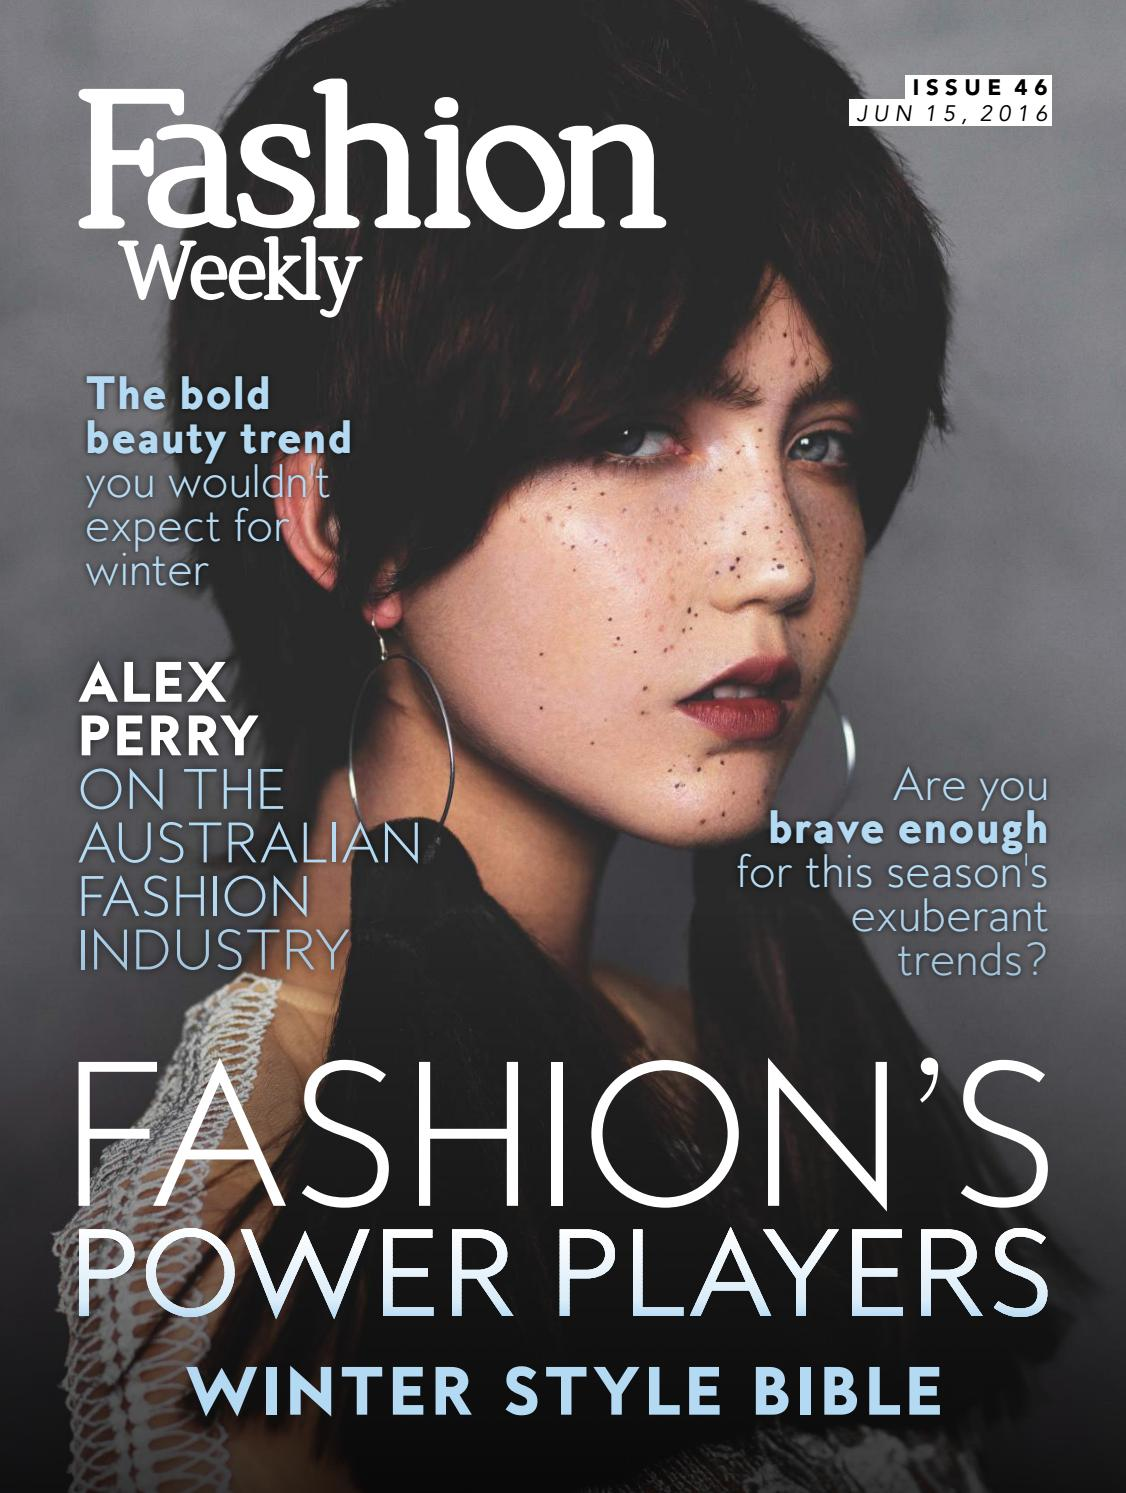 Fashion Weekly Magazine Issue 46 By Fashion Weekly Issuu